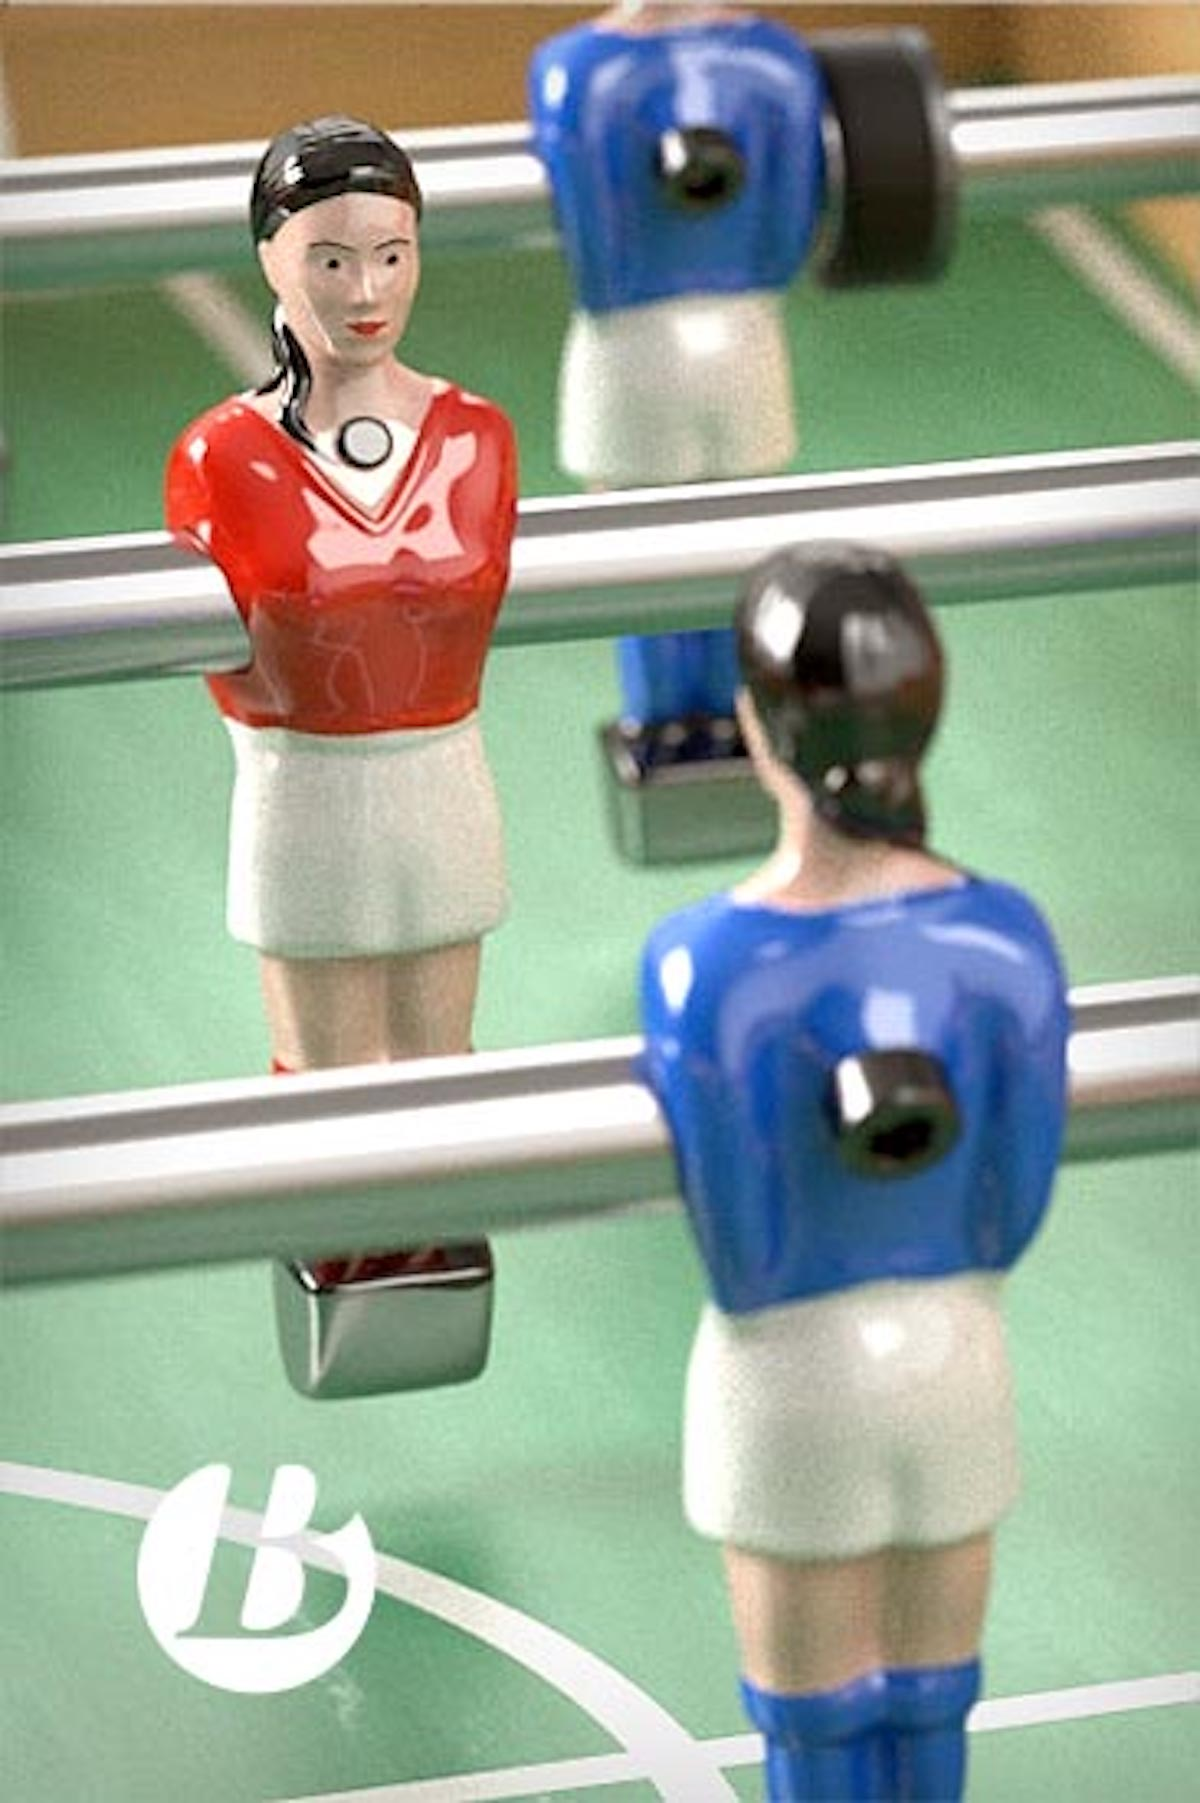 Baby-foot mixte figurines féminines